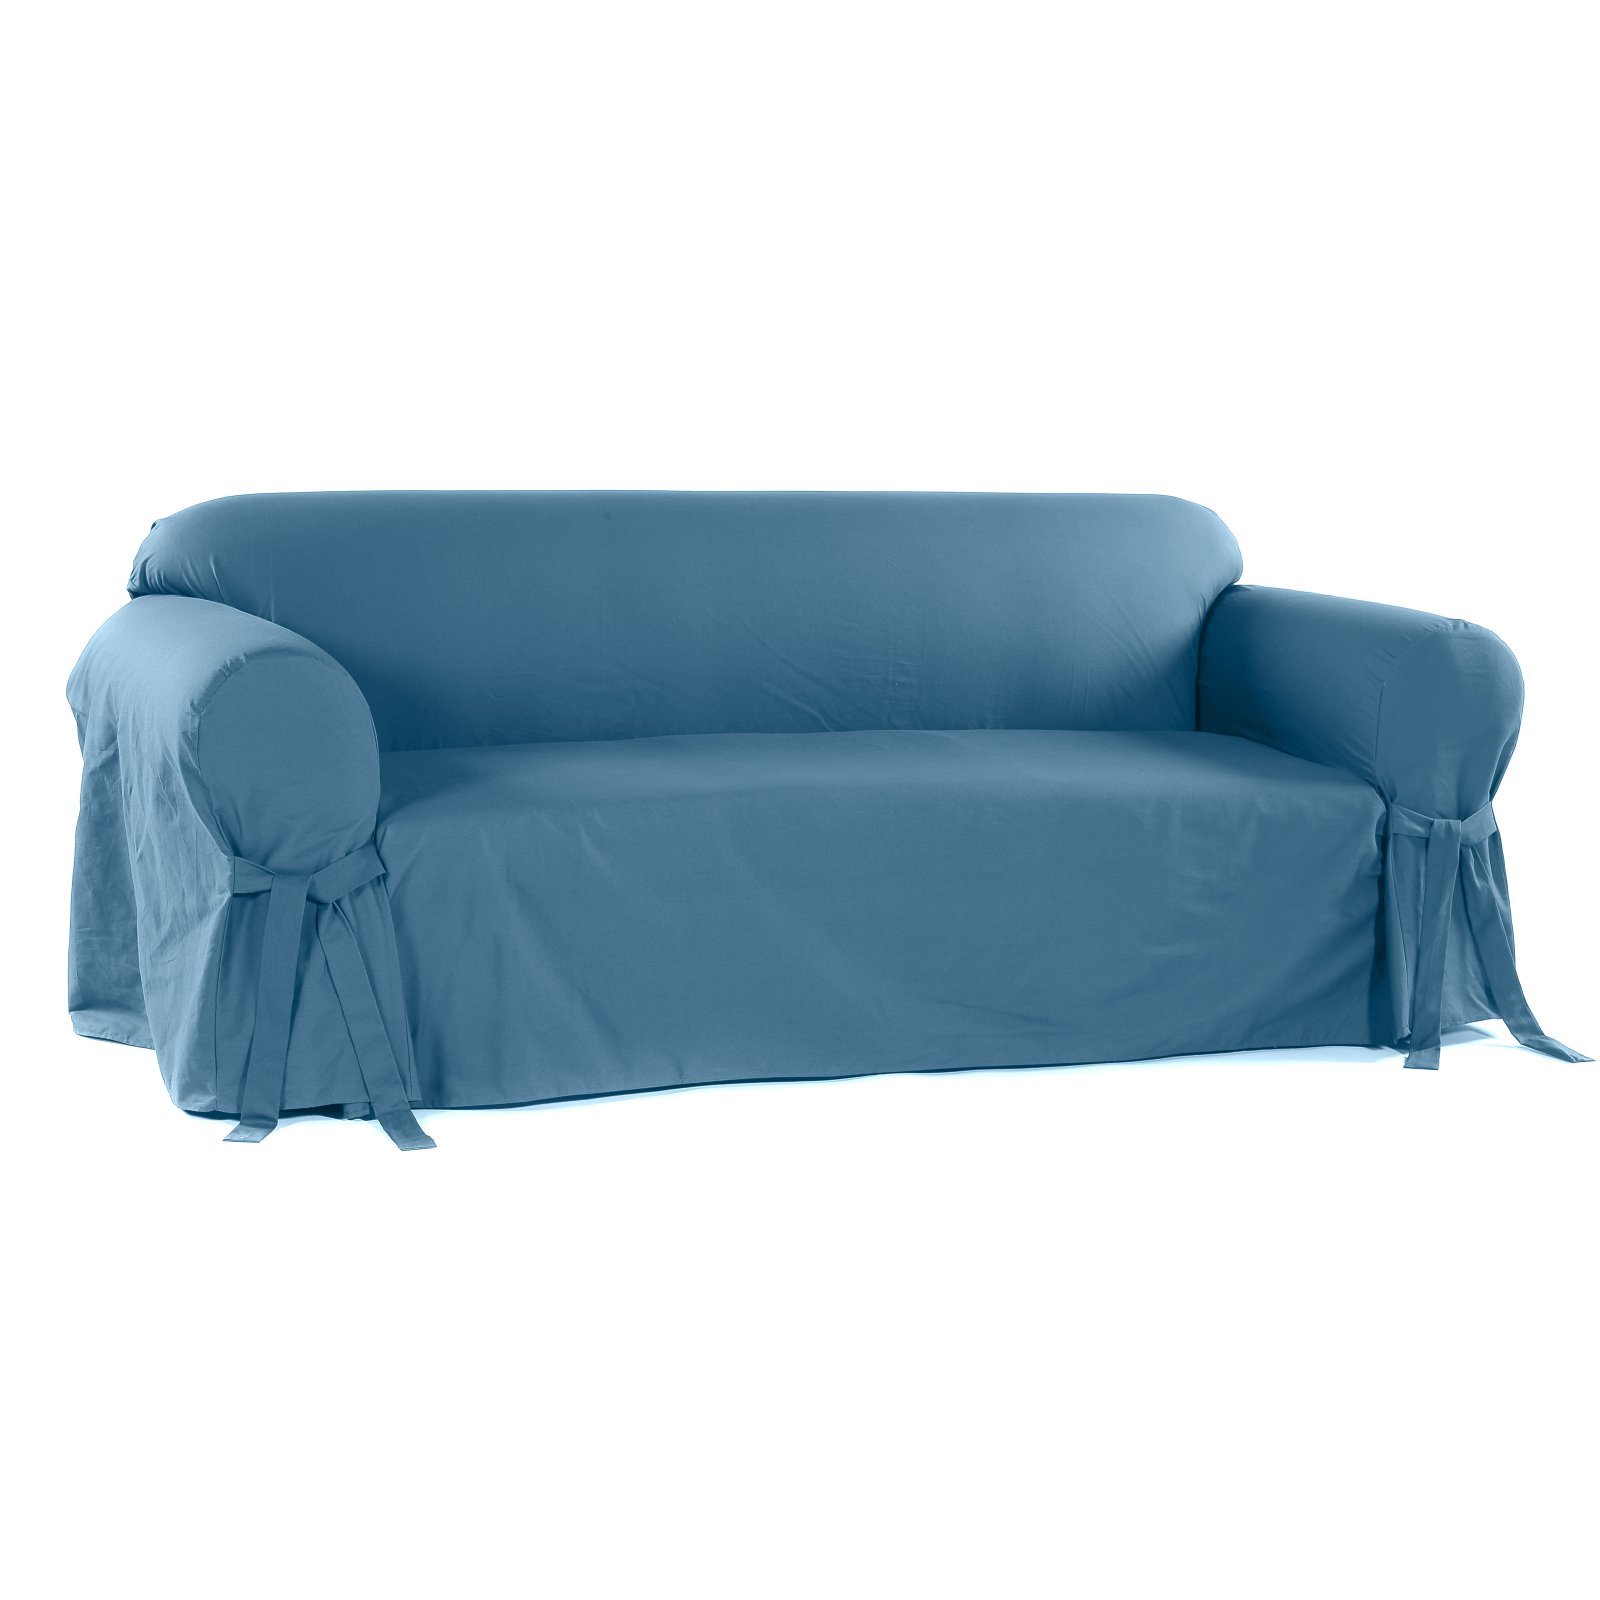 Classic Slip Covers 1 Piece Cotton Sofa Slipcover With Bowties